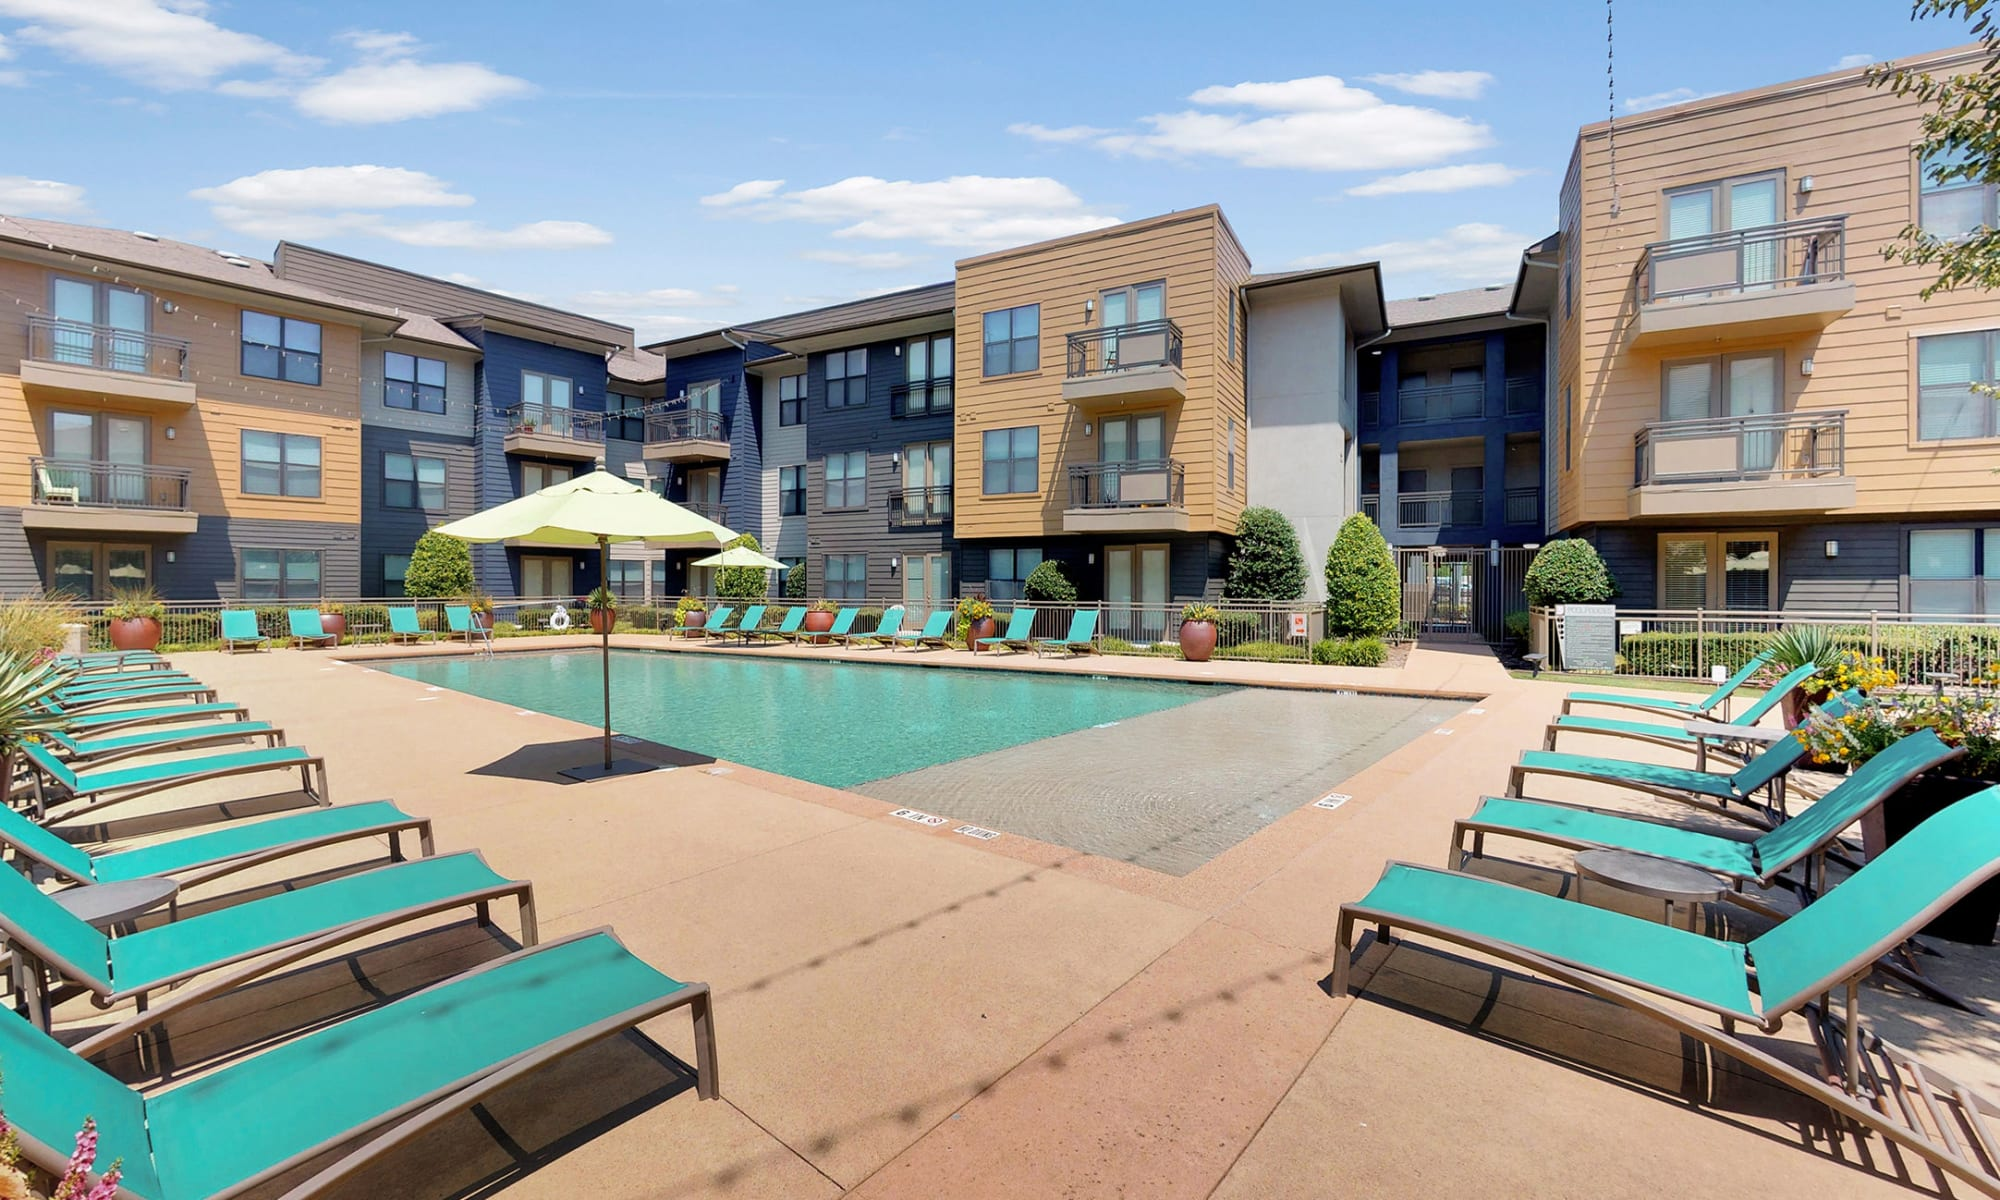 Apartments at 5th Street Crossing at City Station in Garland, Texas